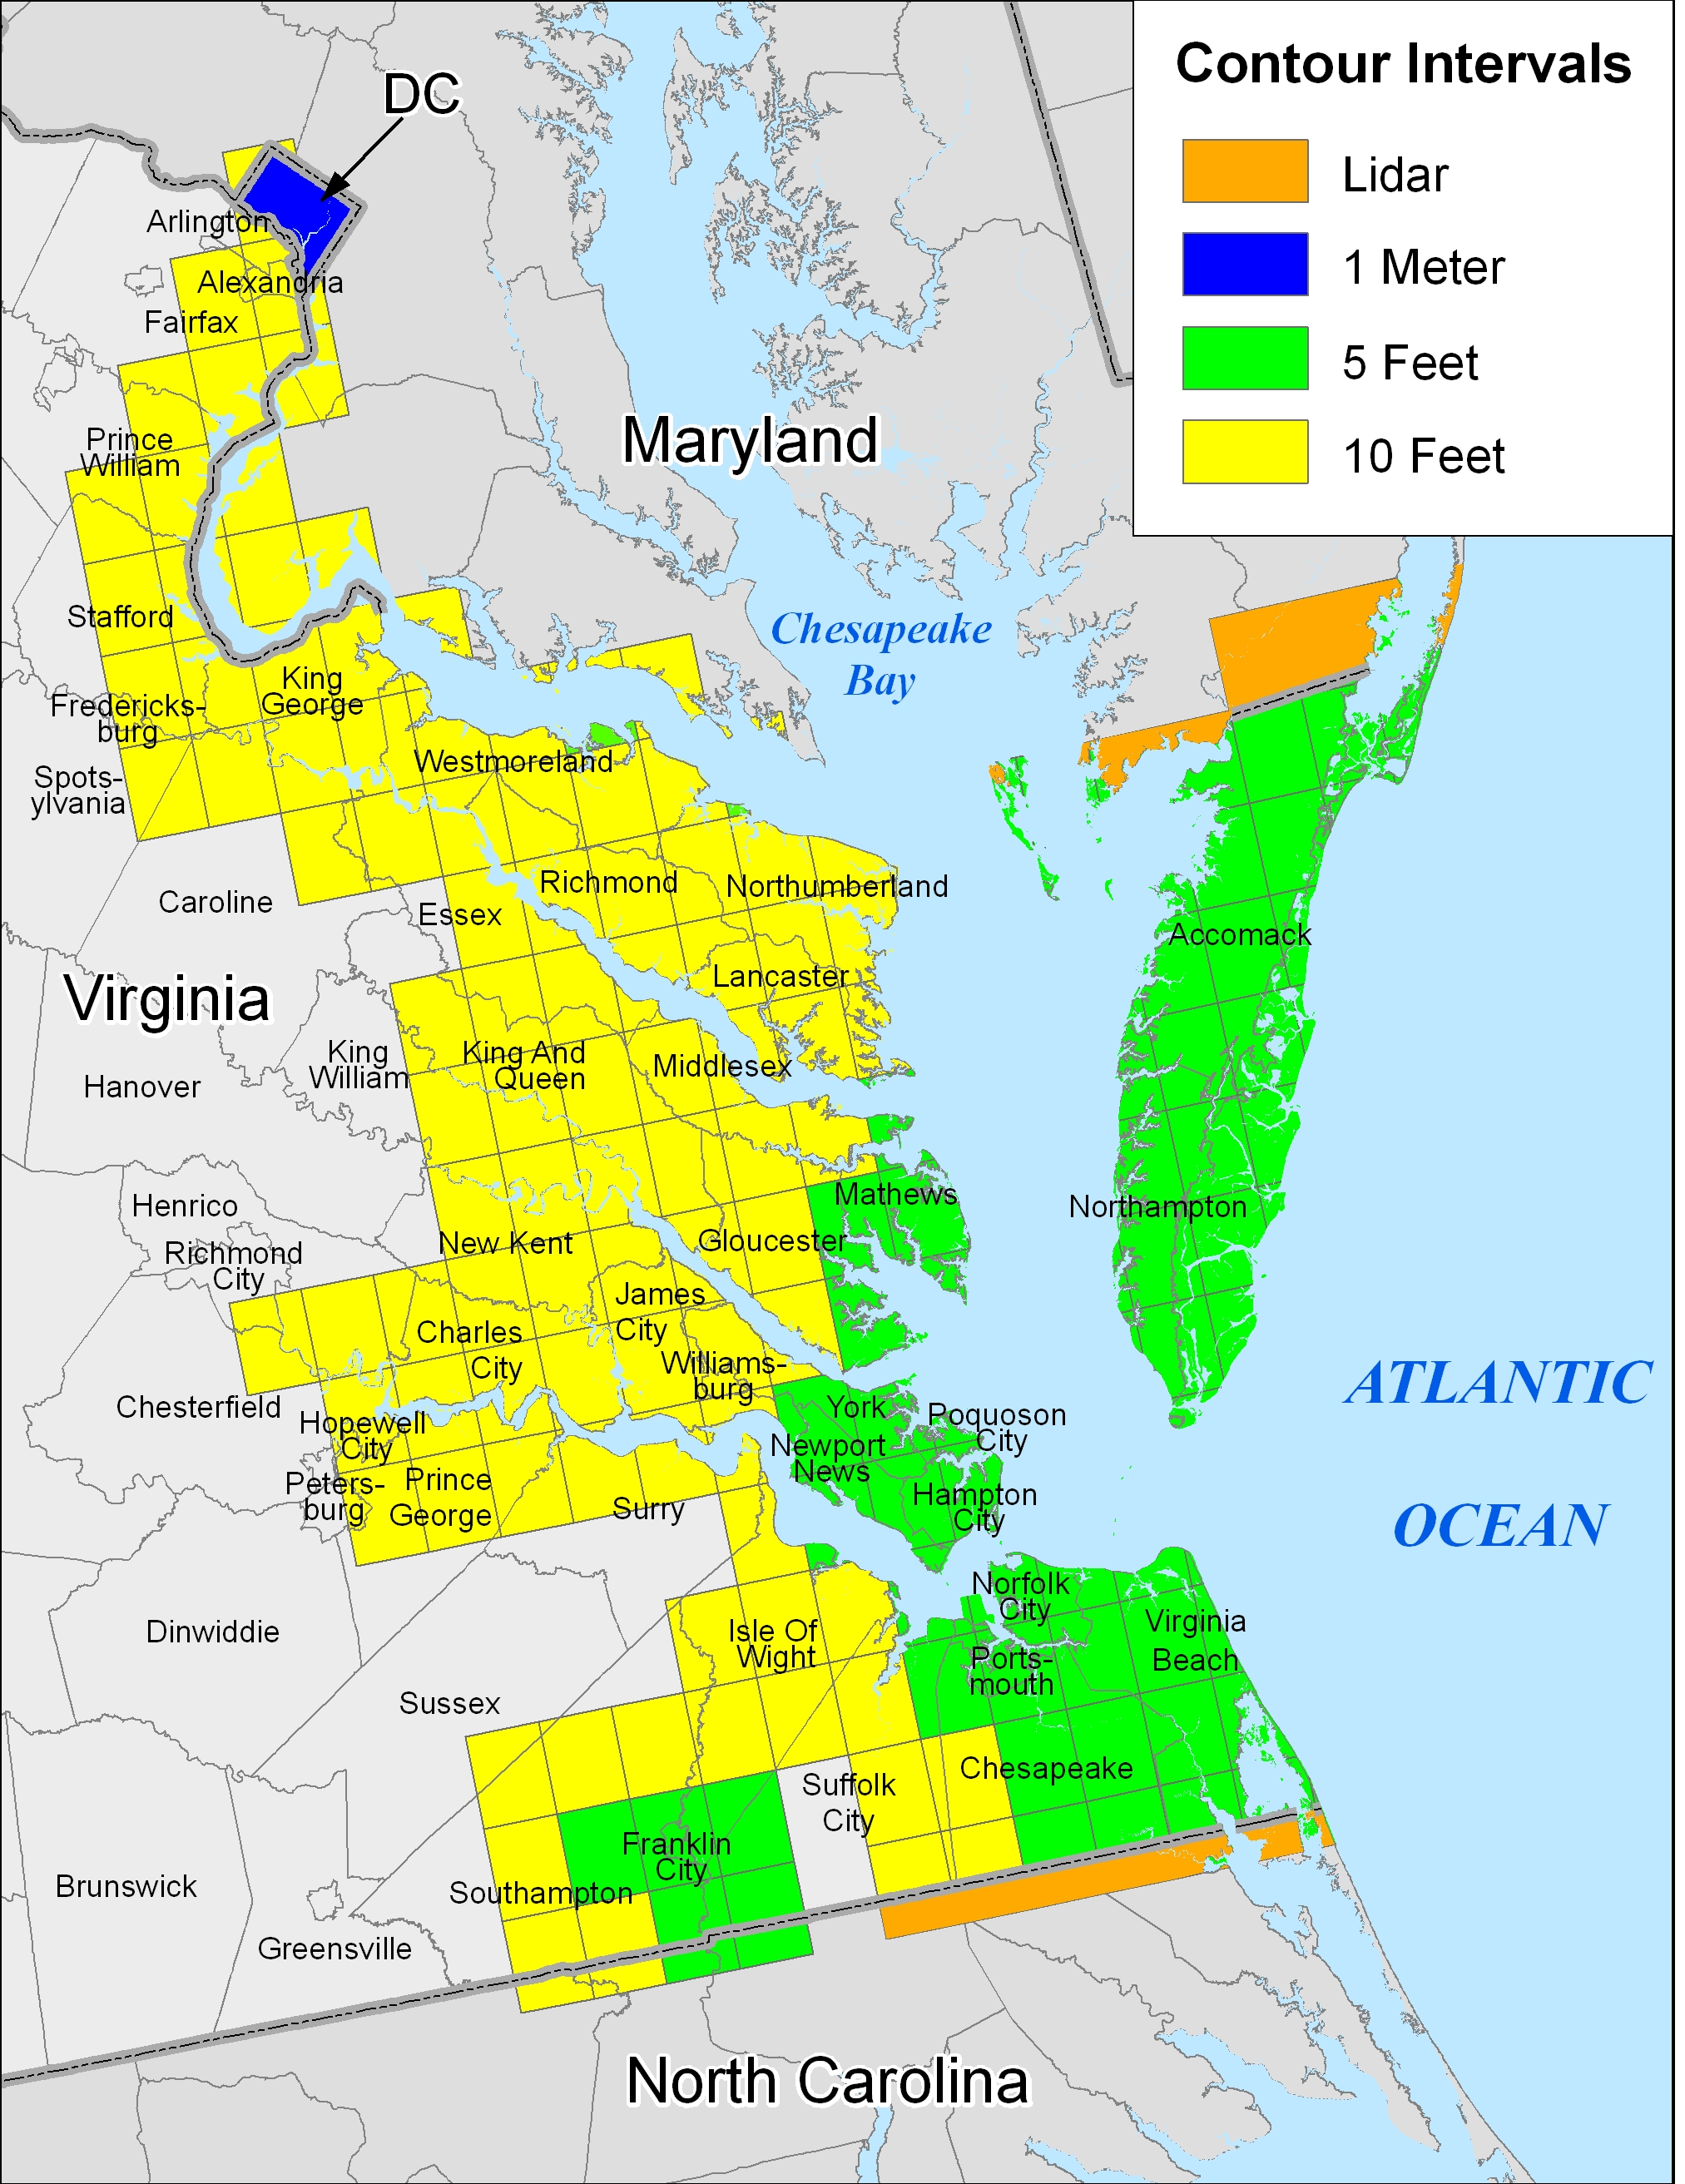 Sea Level Rise Maps for Virginia